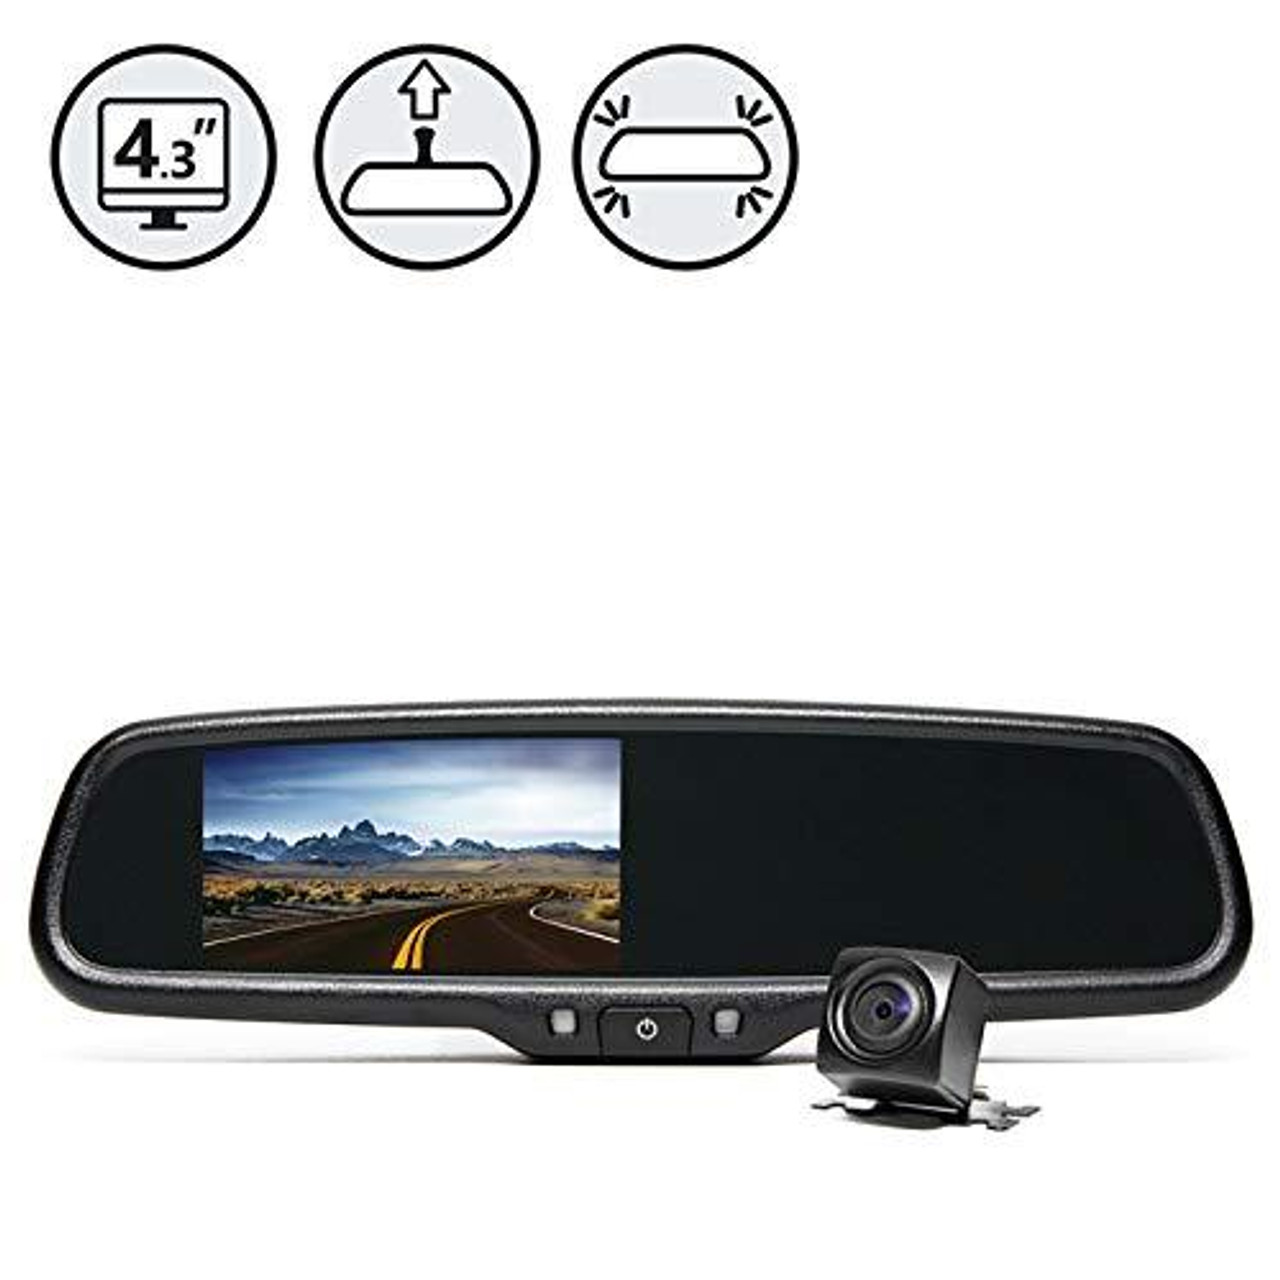 Rear View Safety RVS-770718 Black Rear View Camera System (One (1) Camera Setup with Mirror Display)